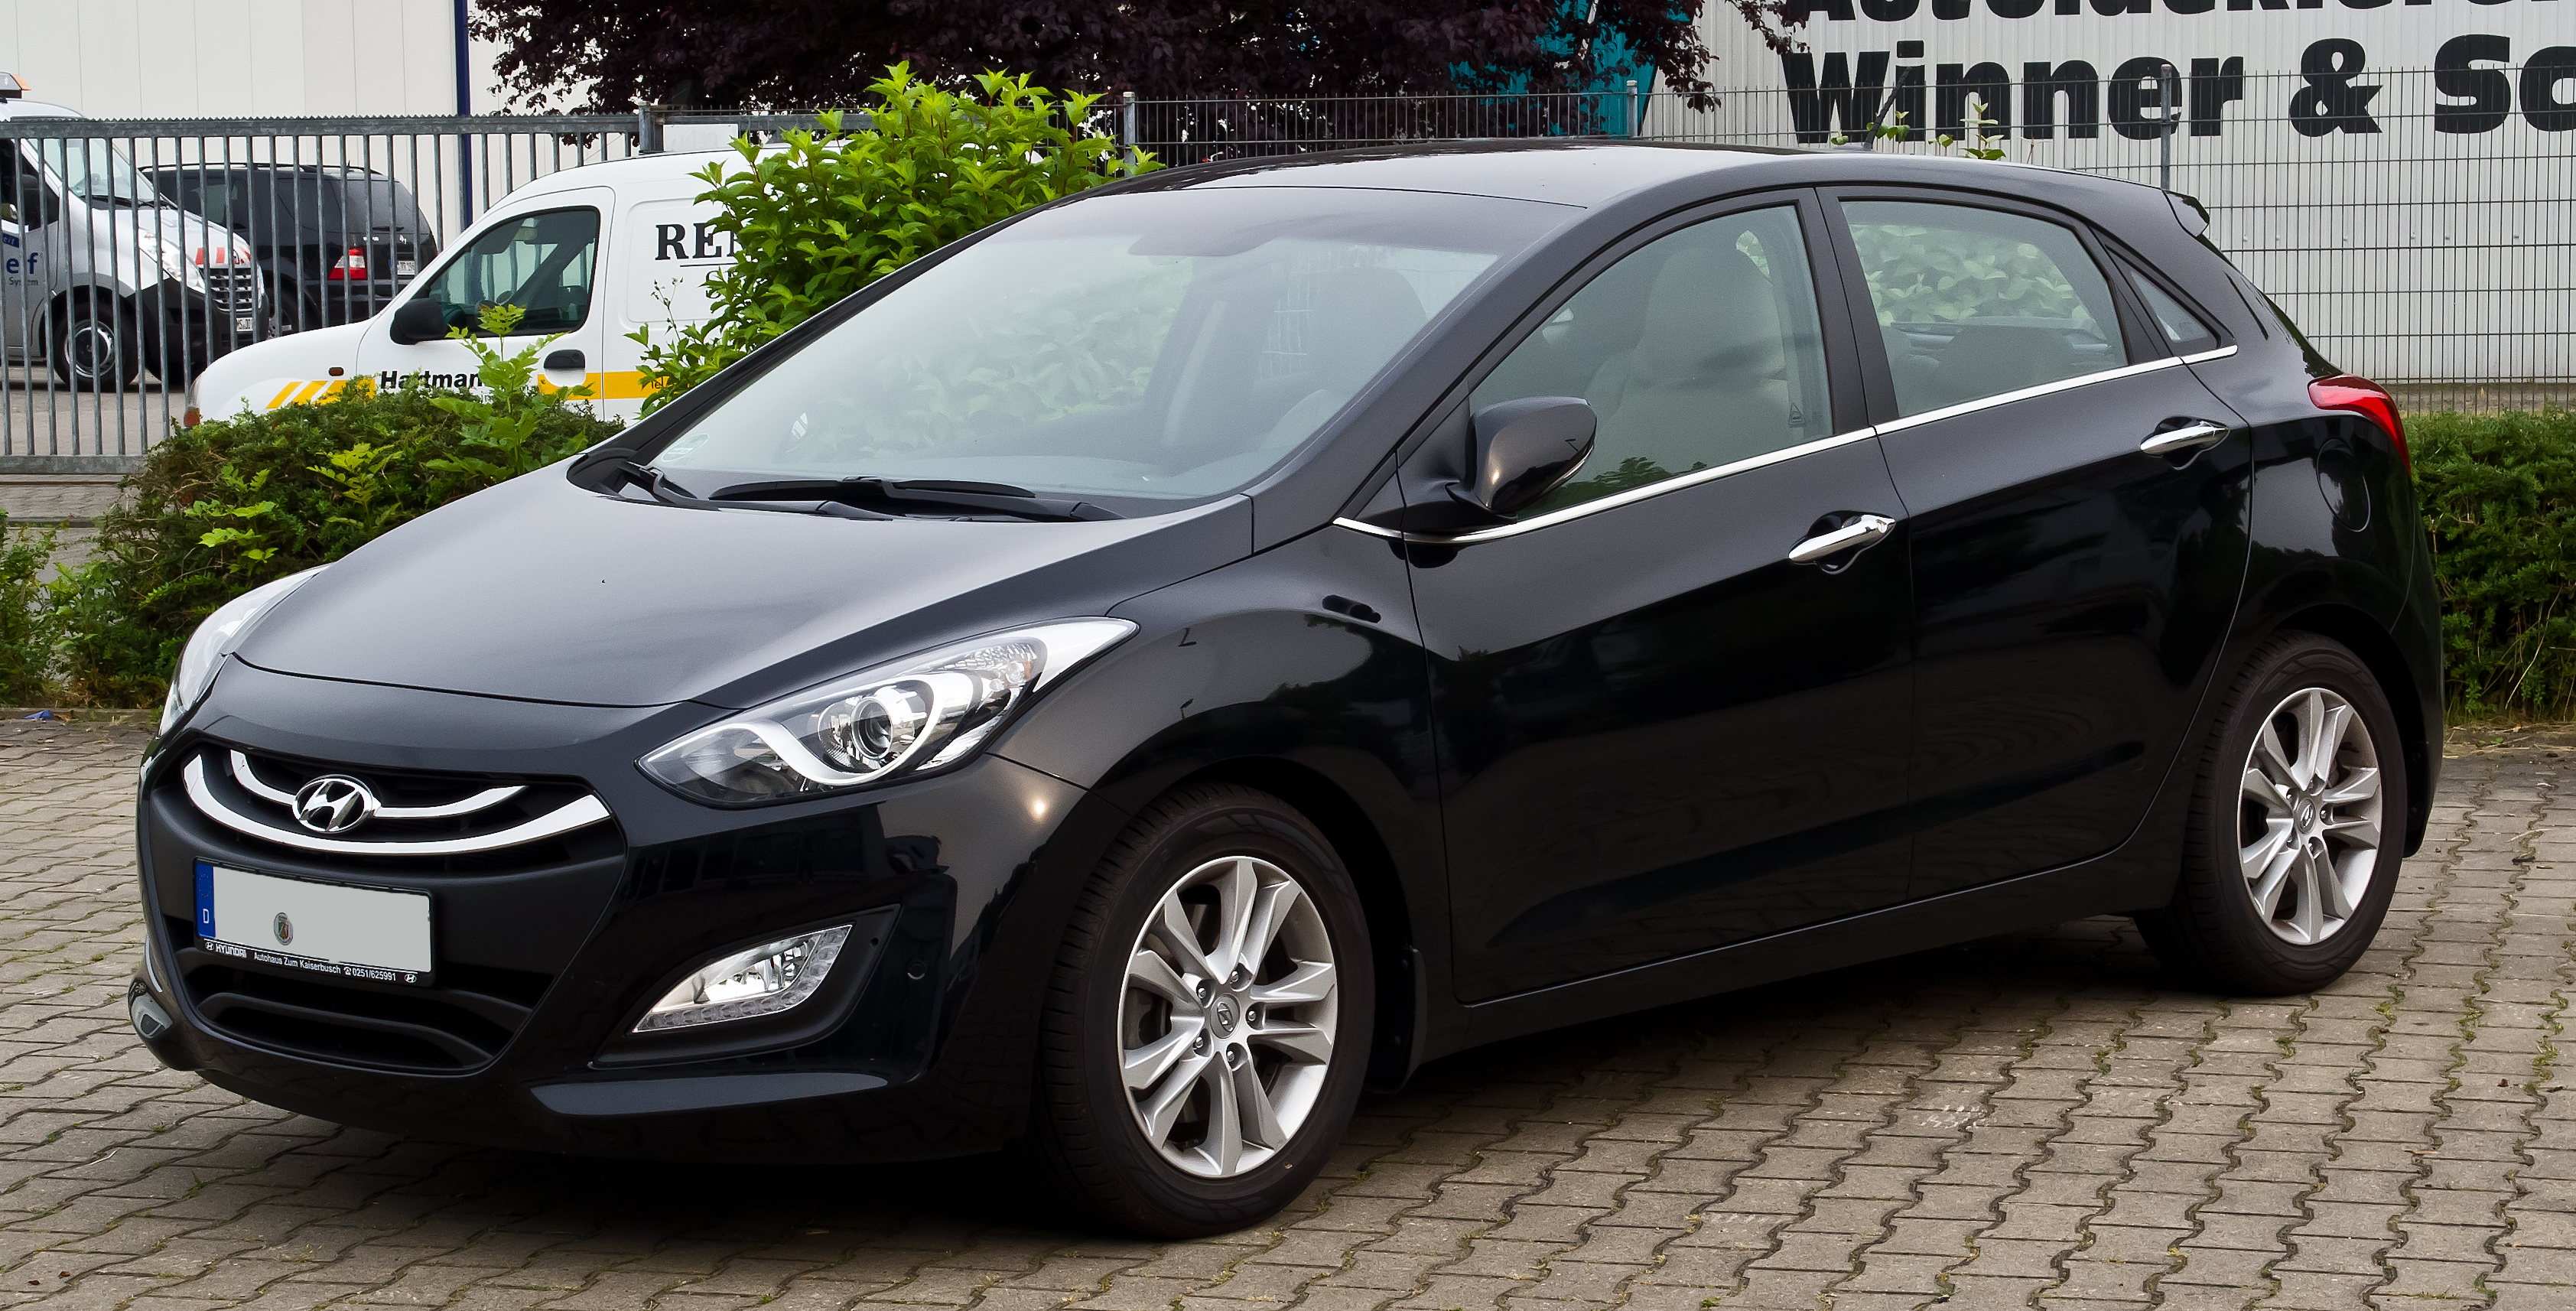 Hyundai i30 1.6 2013 photo - 4